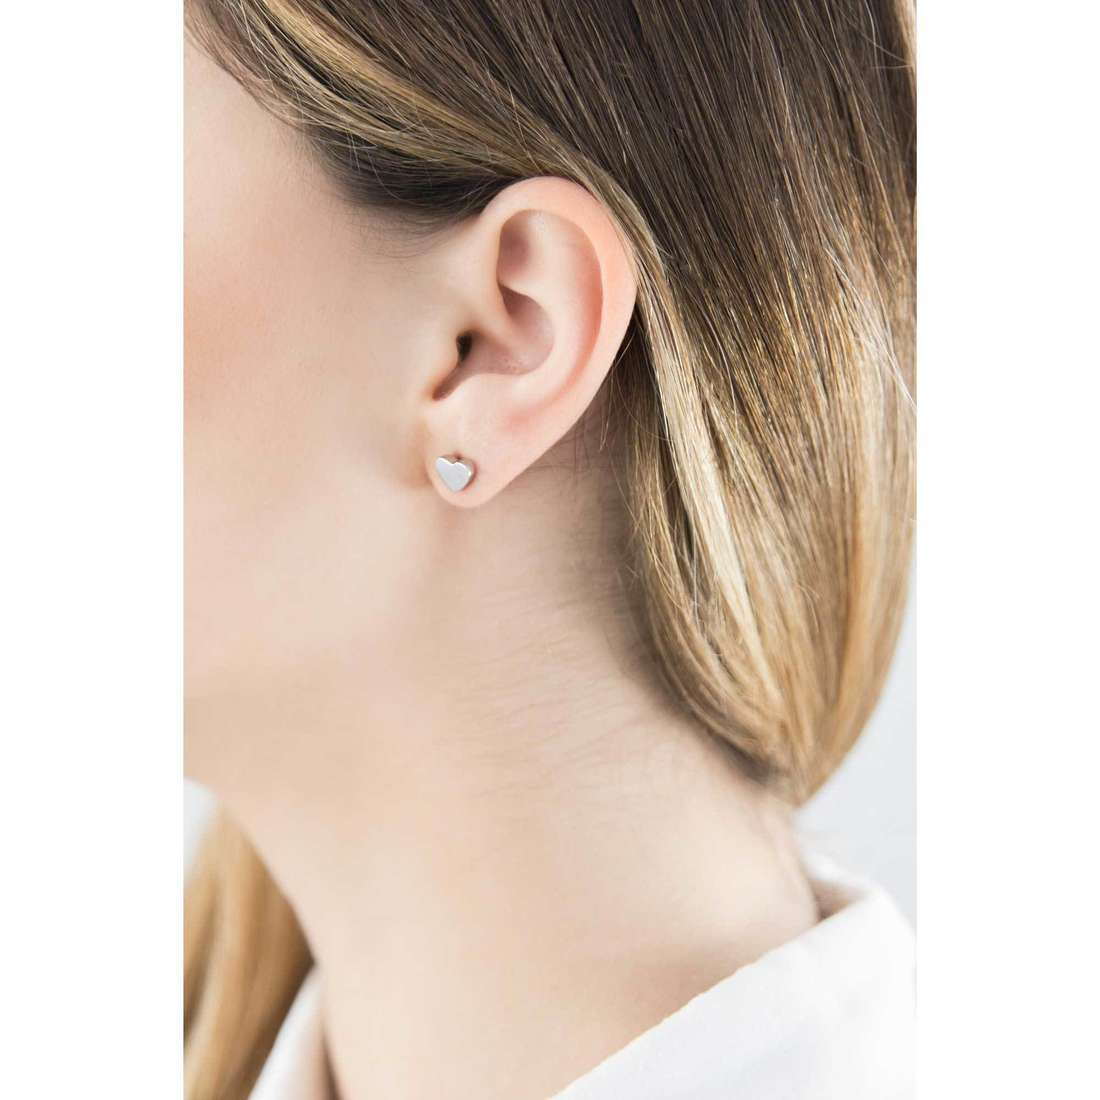 Marlù boucles d'oreille My Luck femme 18OR003 indosso